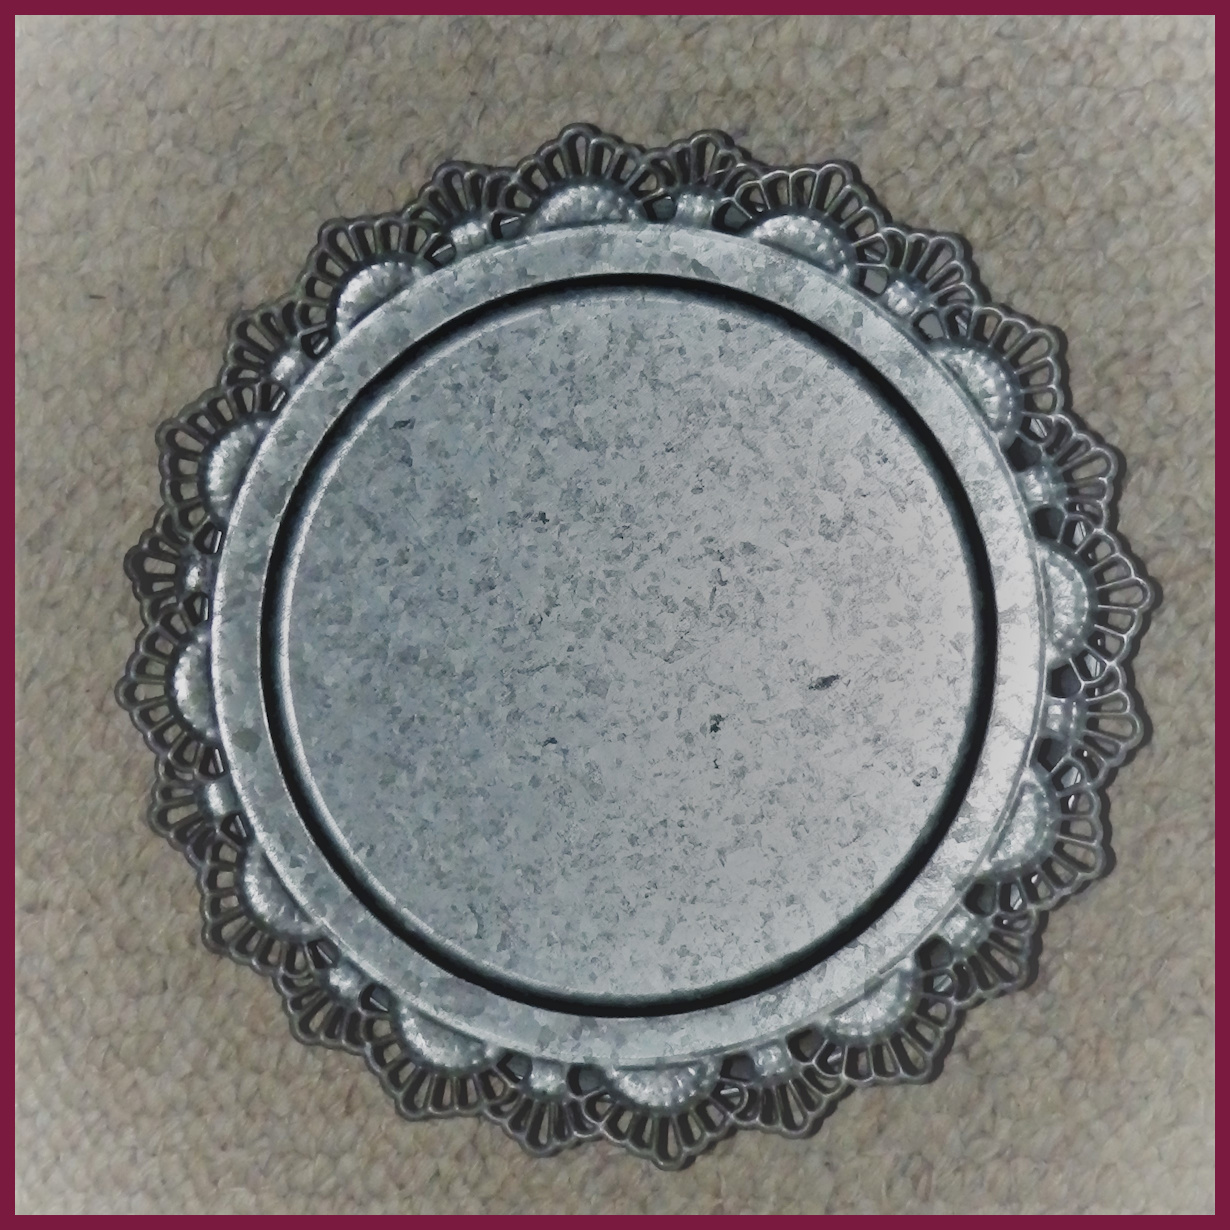 metal-tin-fancy-lace-plate-xafjoc1801.jpg